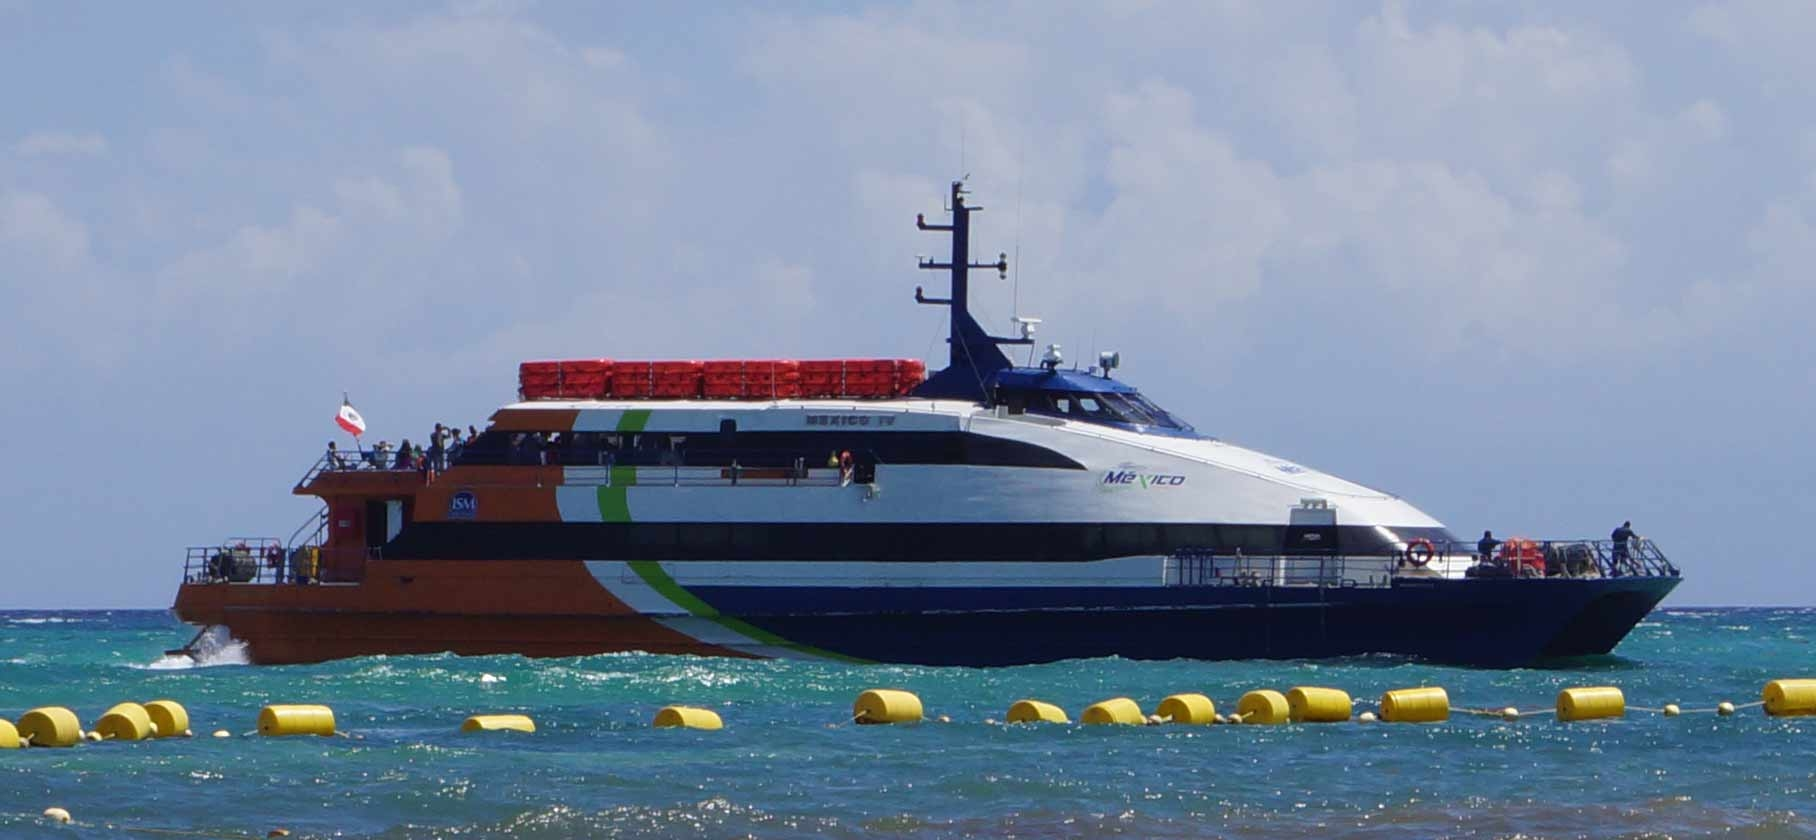 A ferry that is just getting ready to dock in Playa Del Carmen.